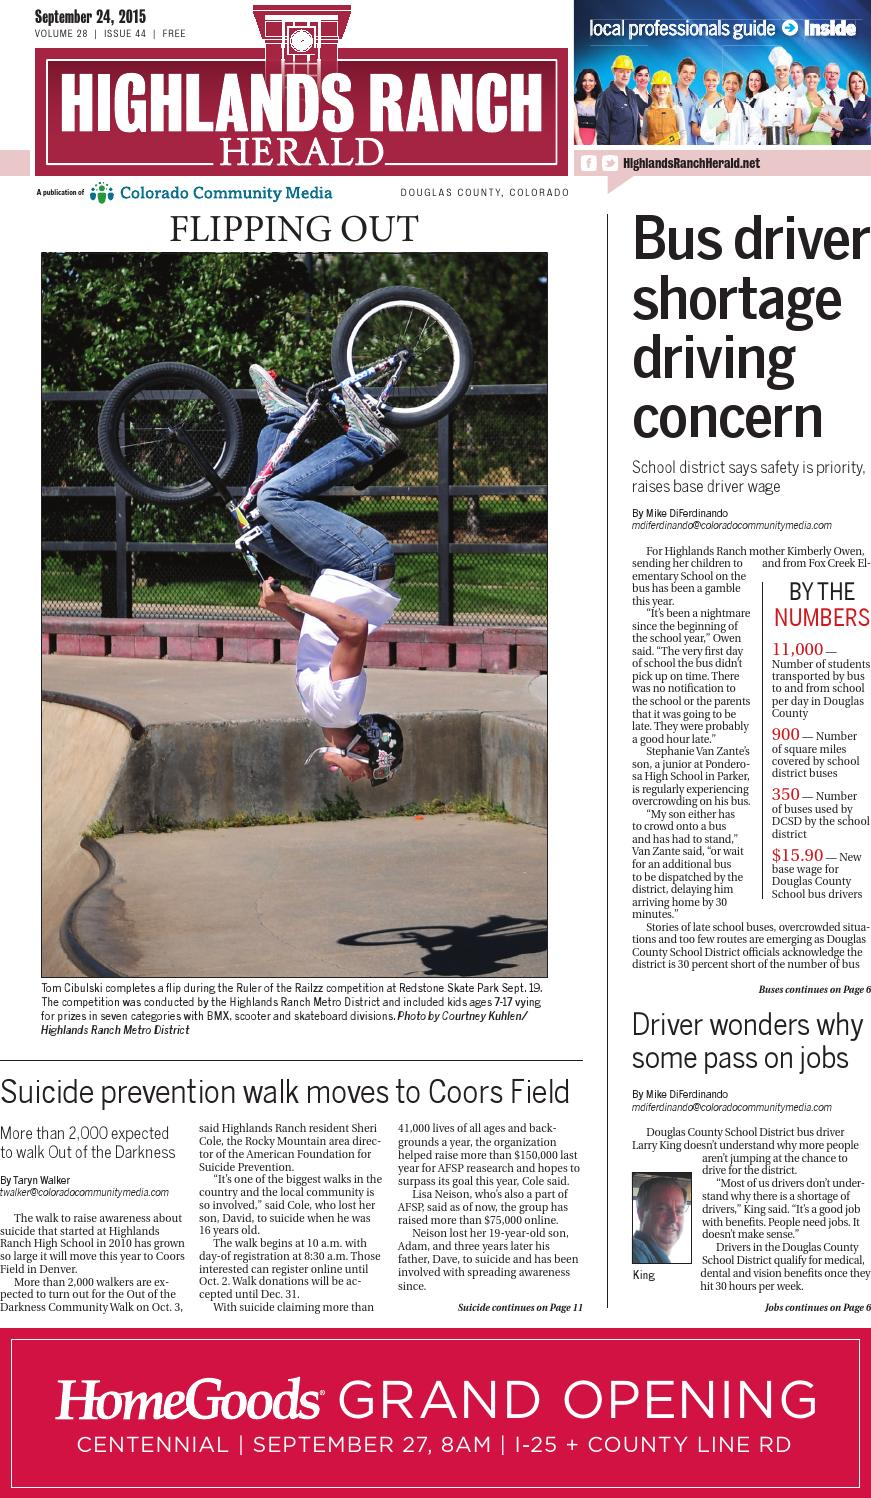 Highlands Ranch Herald 0924 by Colorado Community Media - issuu